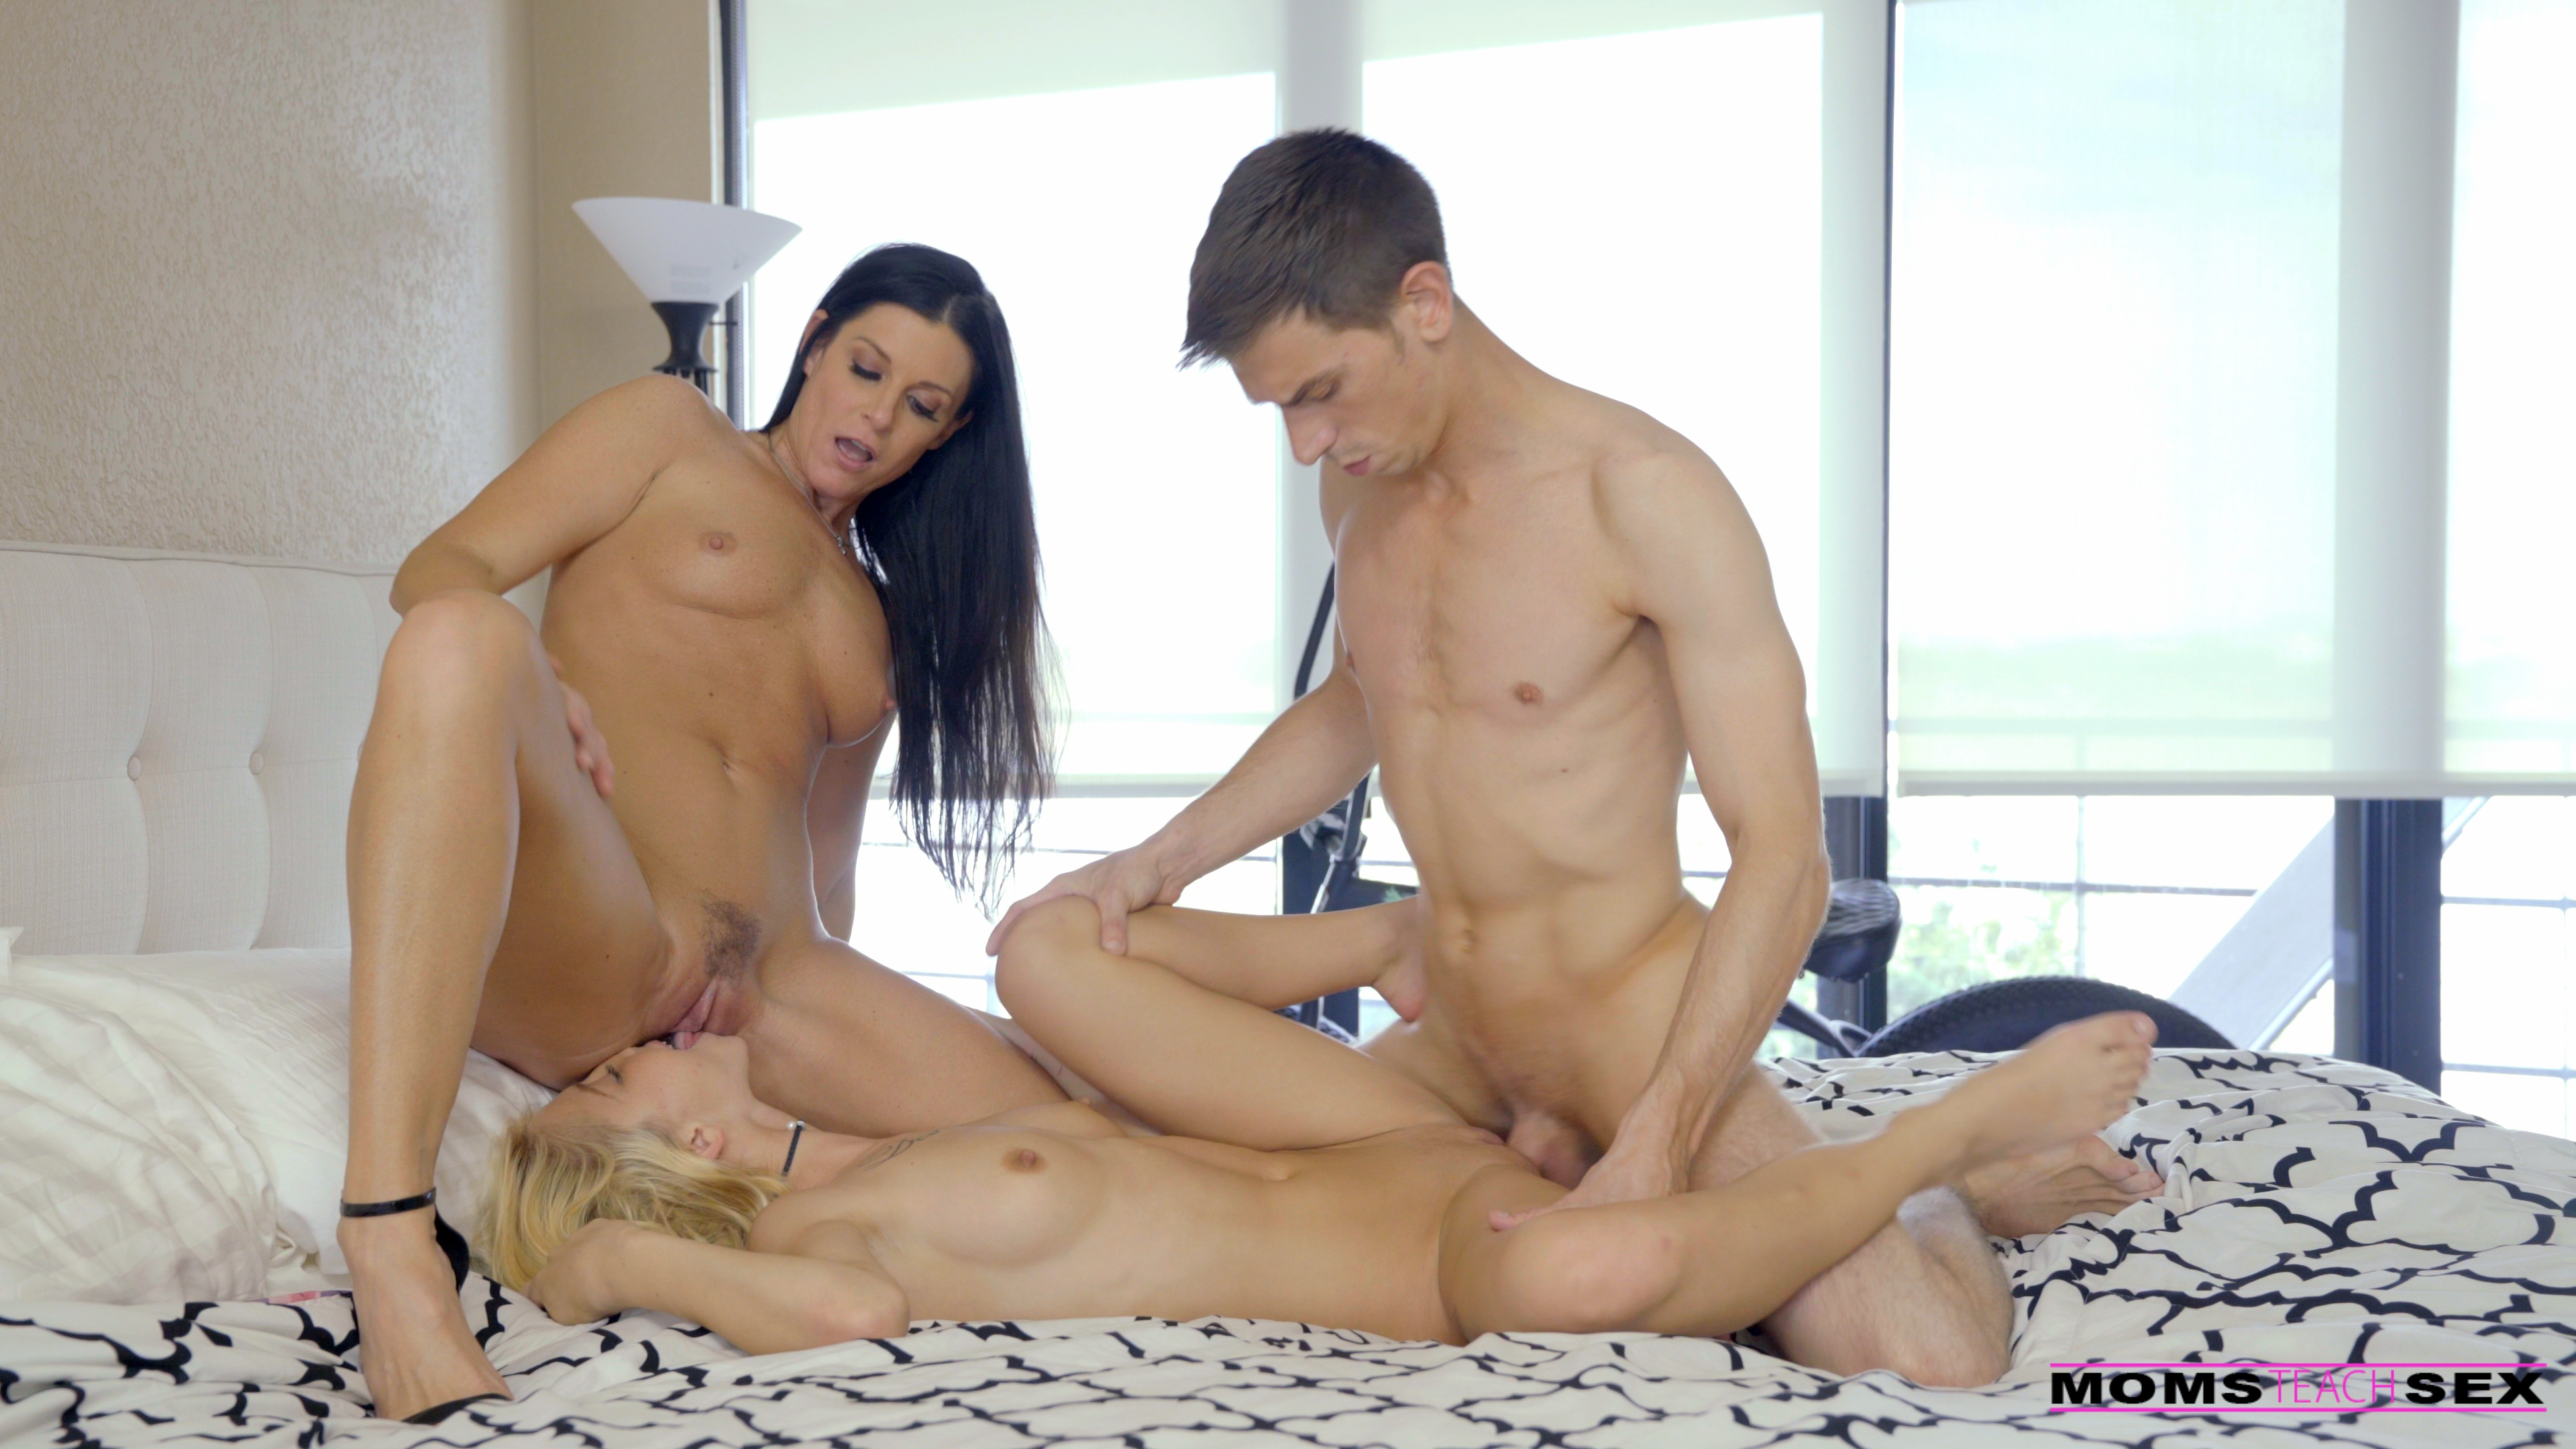 MomsTeachSex.com - India Summer,Kenzie Reeves: Mom Cums First - S6:E8